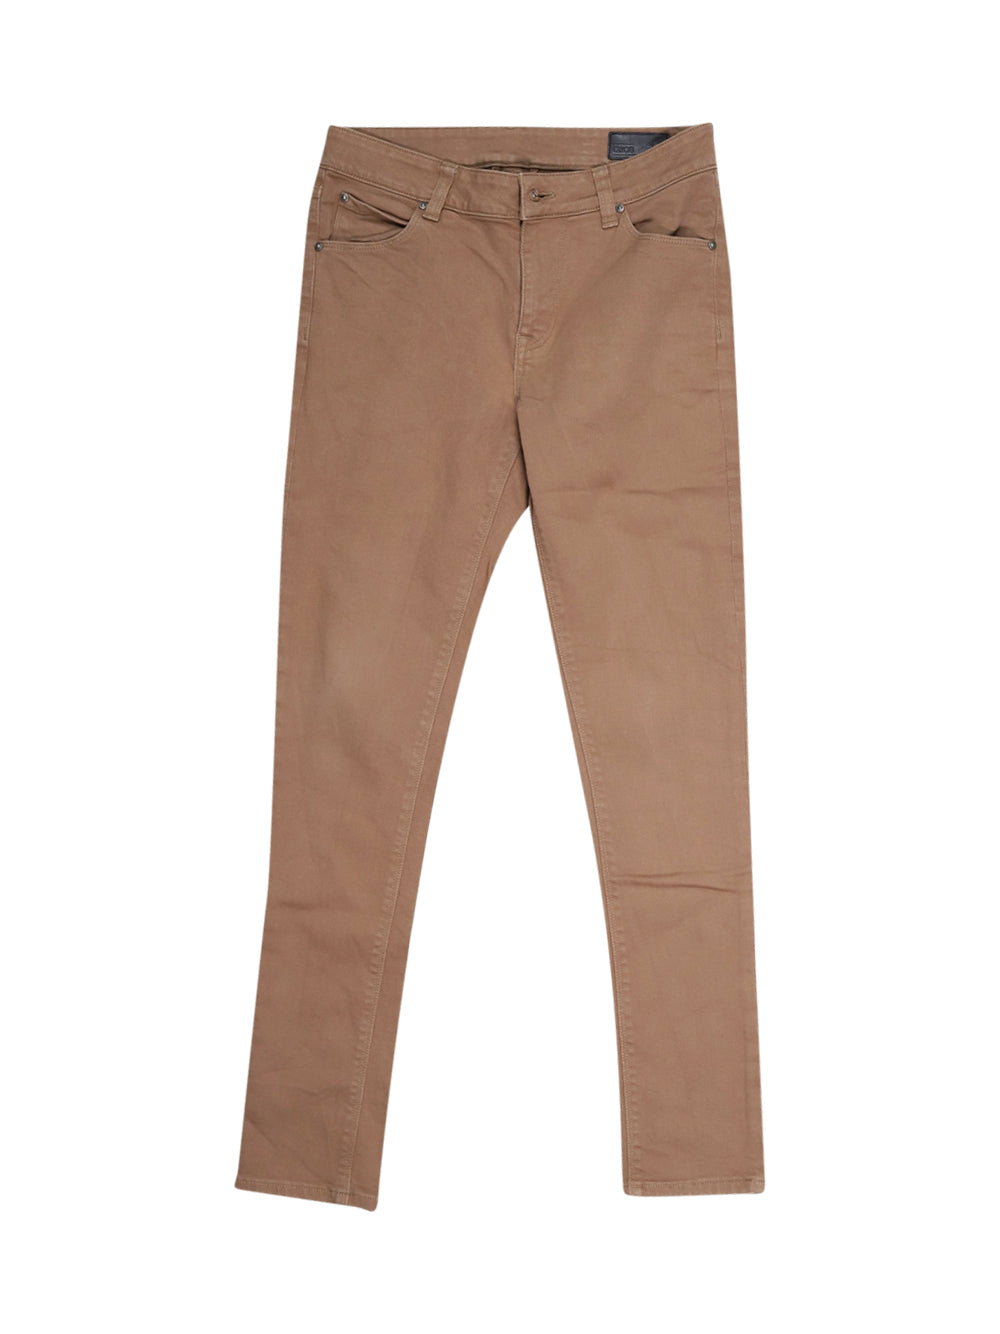 Front photo of Preloved Asos Brown Woman's trousers - size 10/M